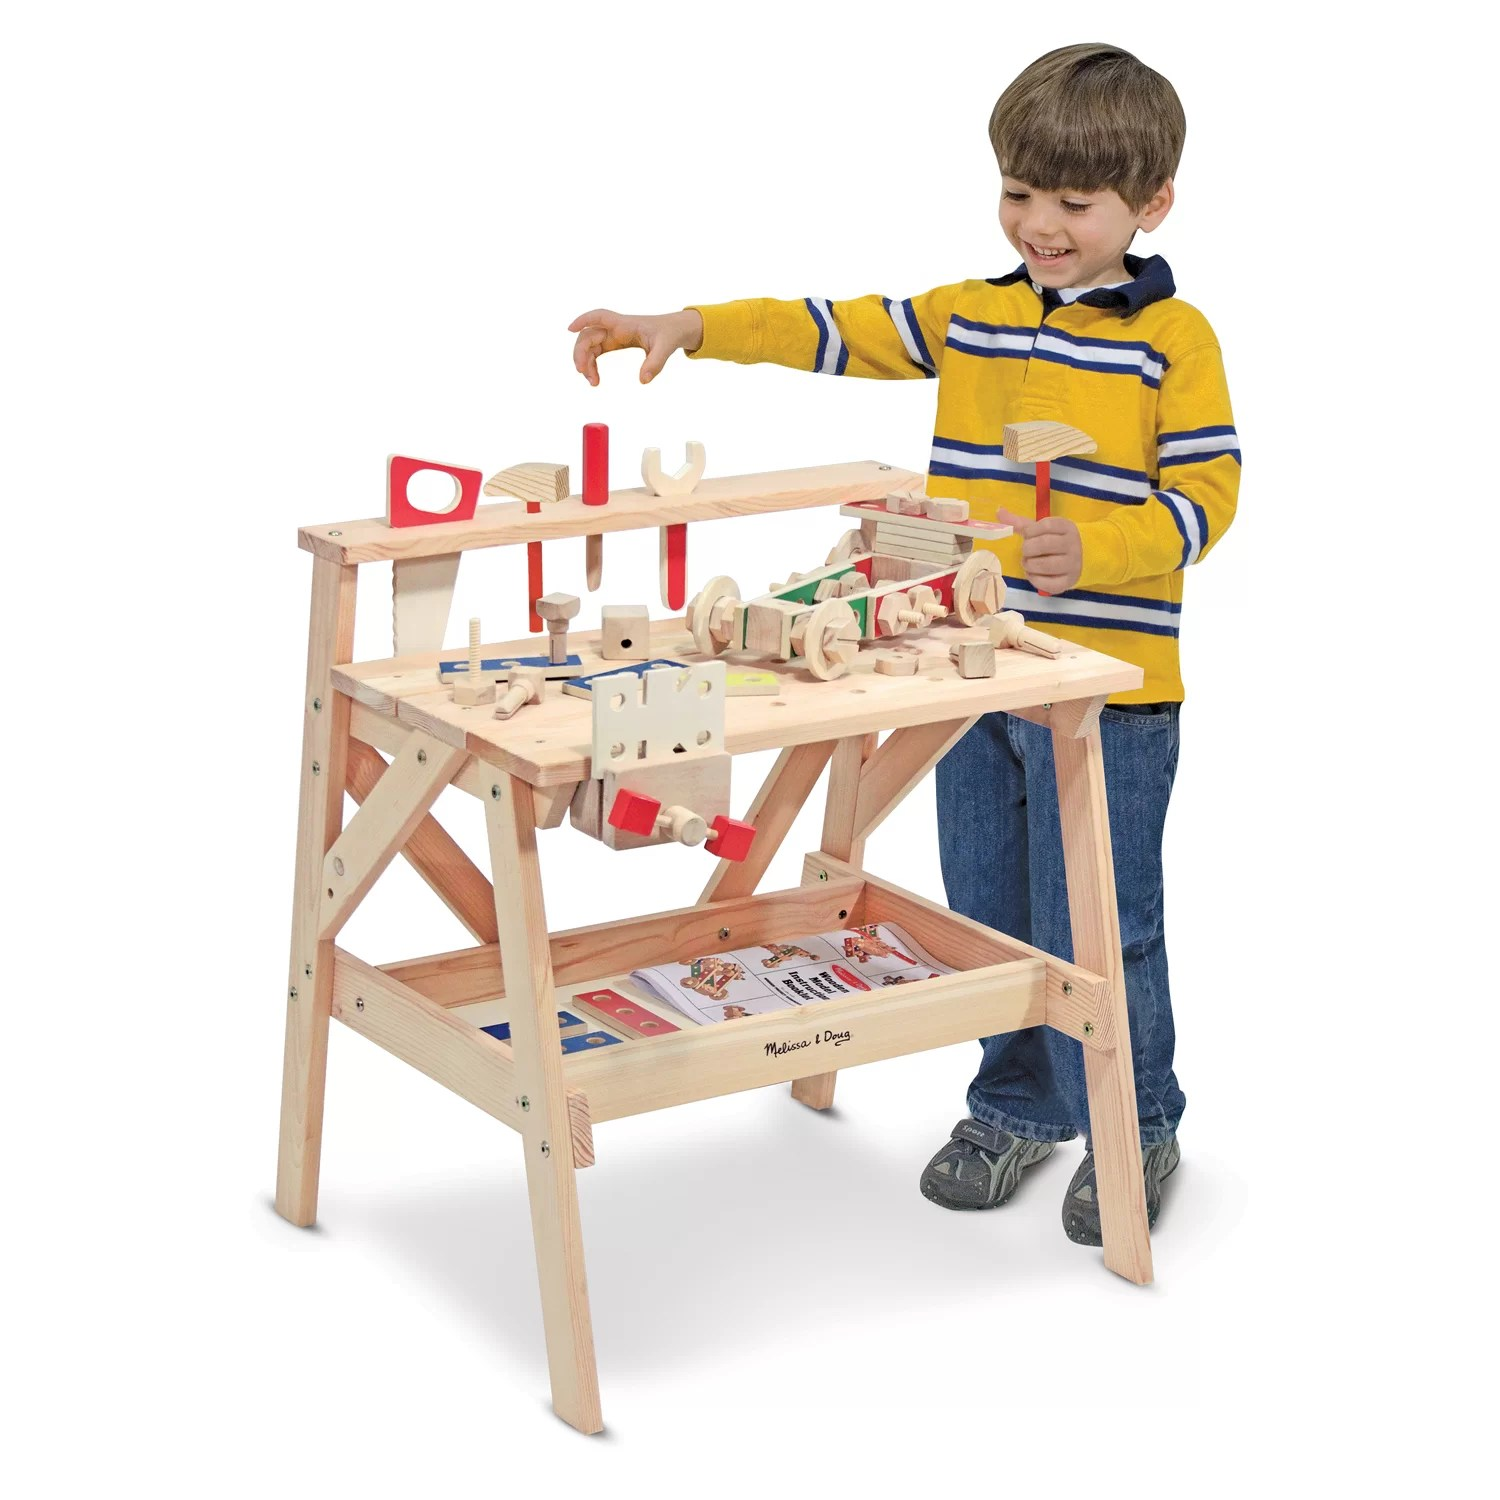 Melissa And Doug Table And Chairs Melissa And Doug Wooden Project Workbench Set And Reviews